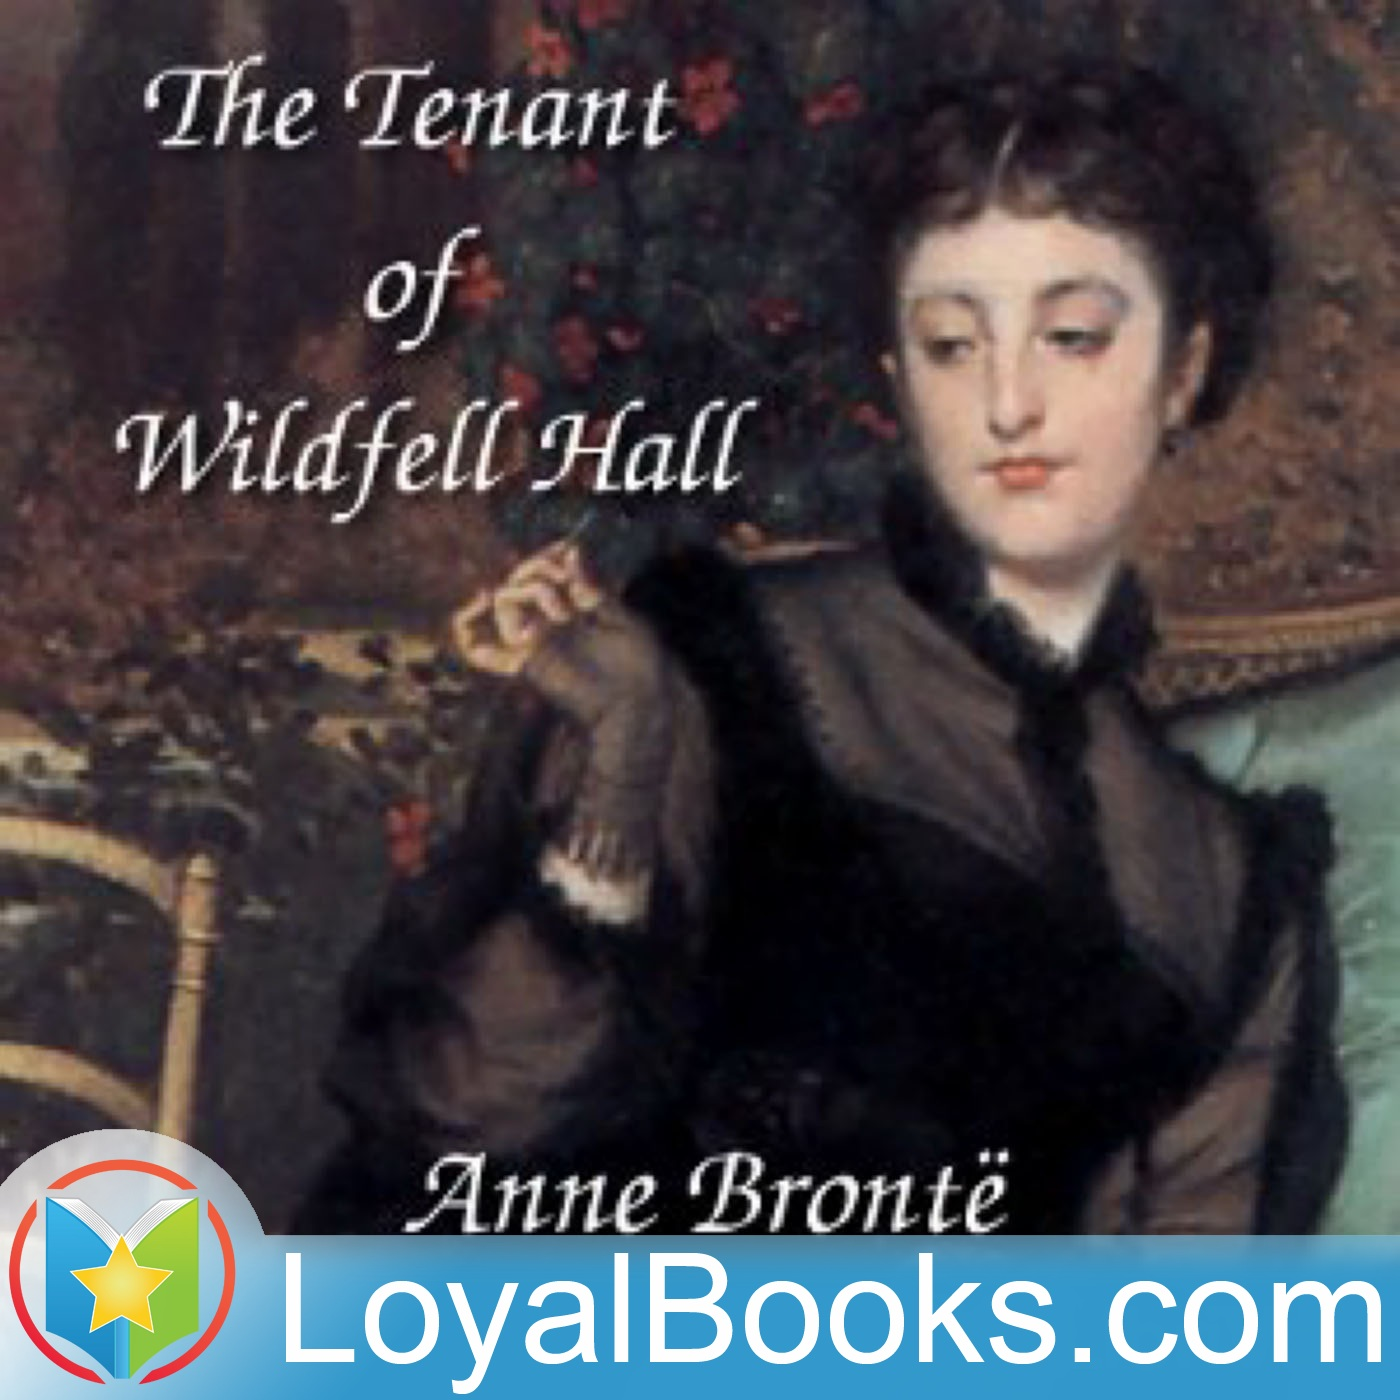 <![CDATA[The Tenant of Wildfell Hall by Anne Brontë]]>